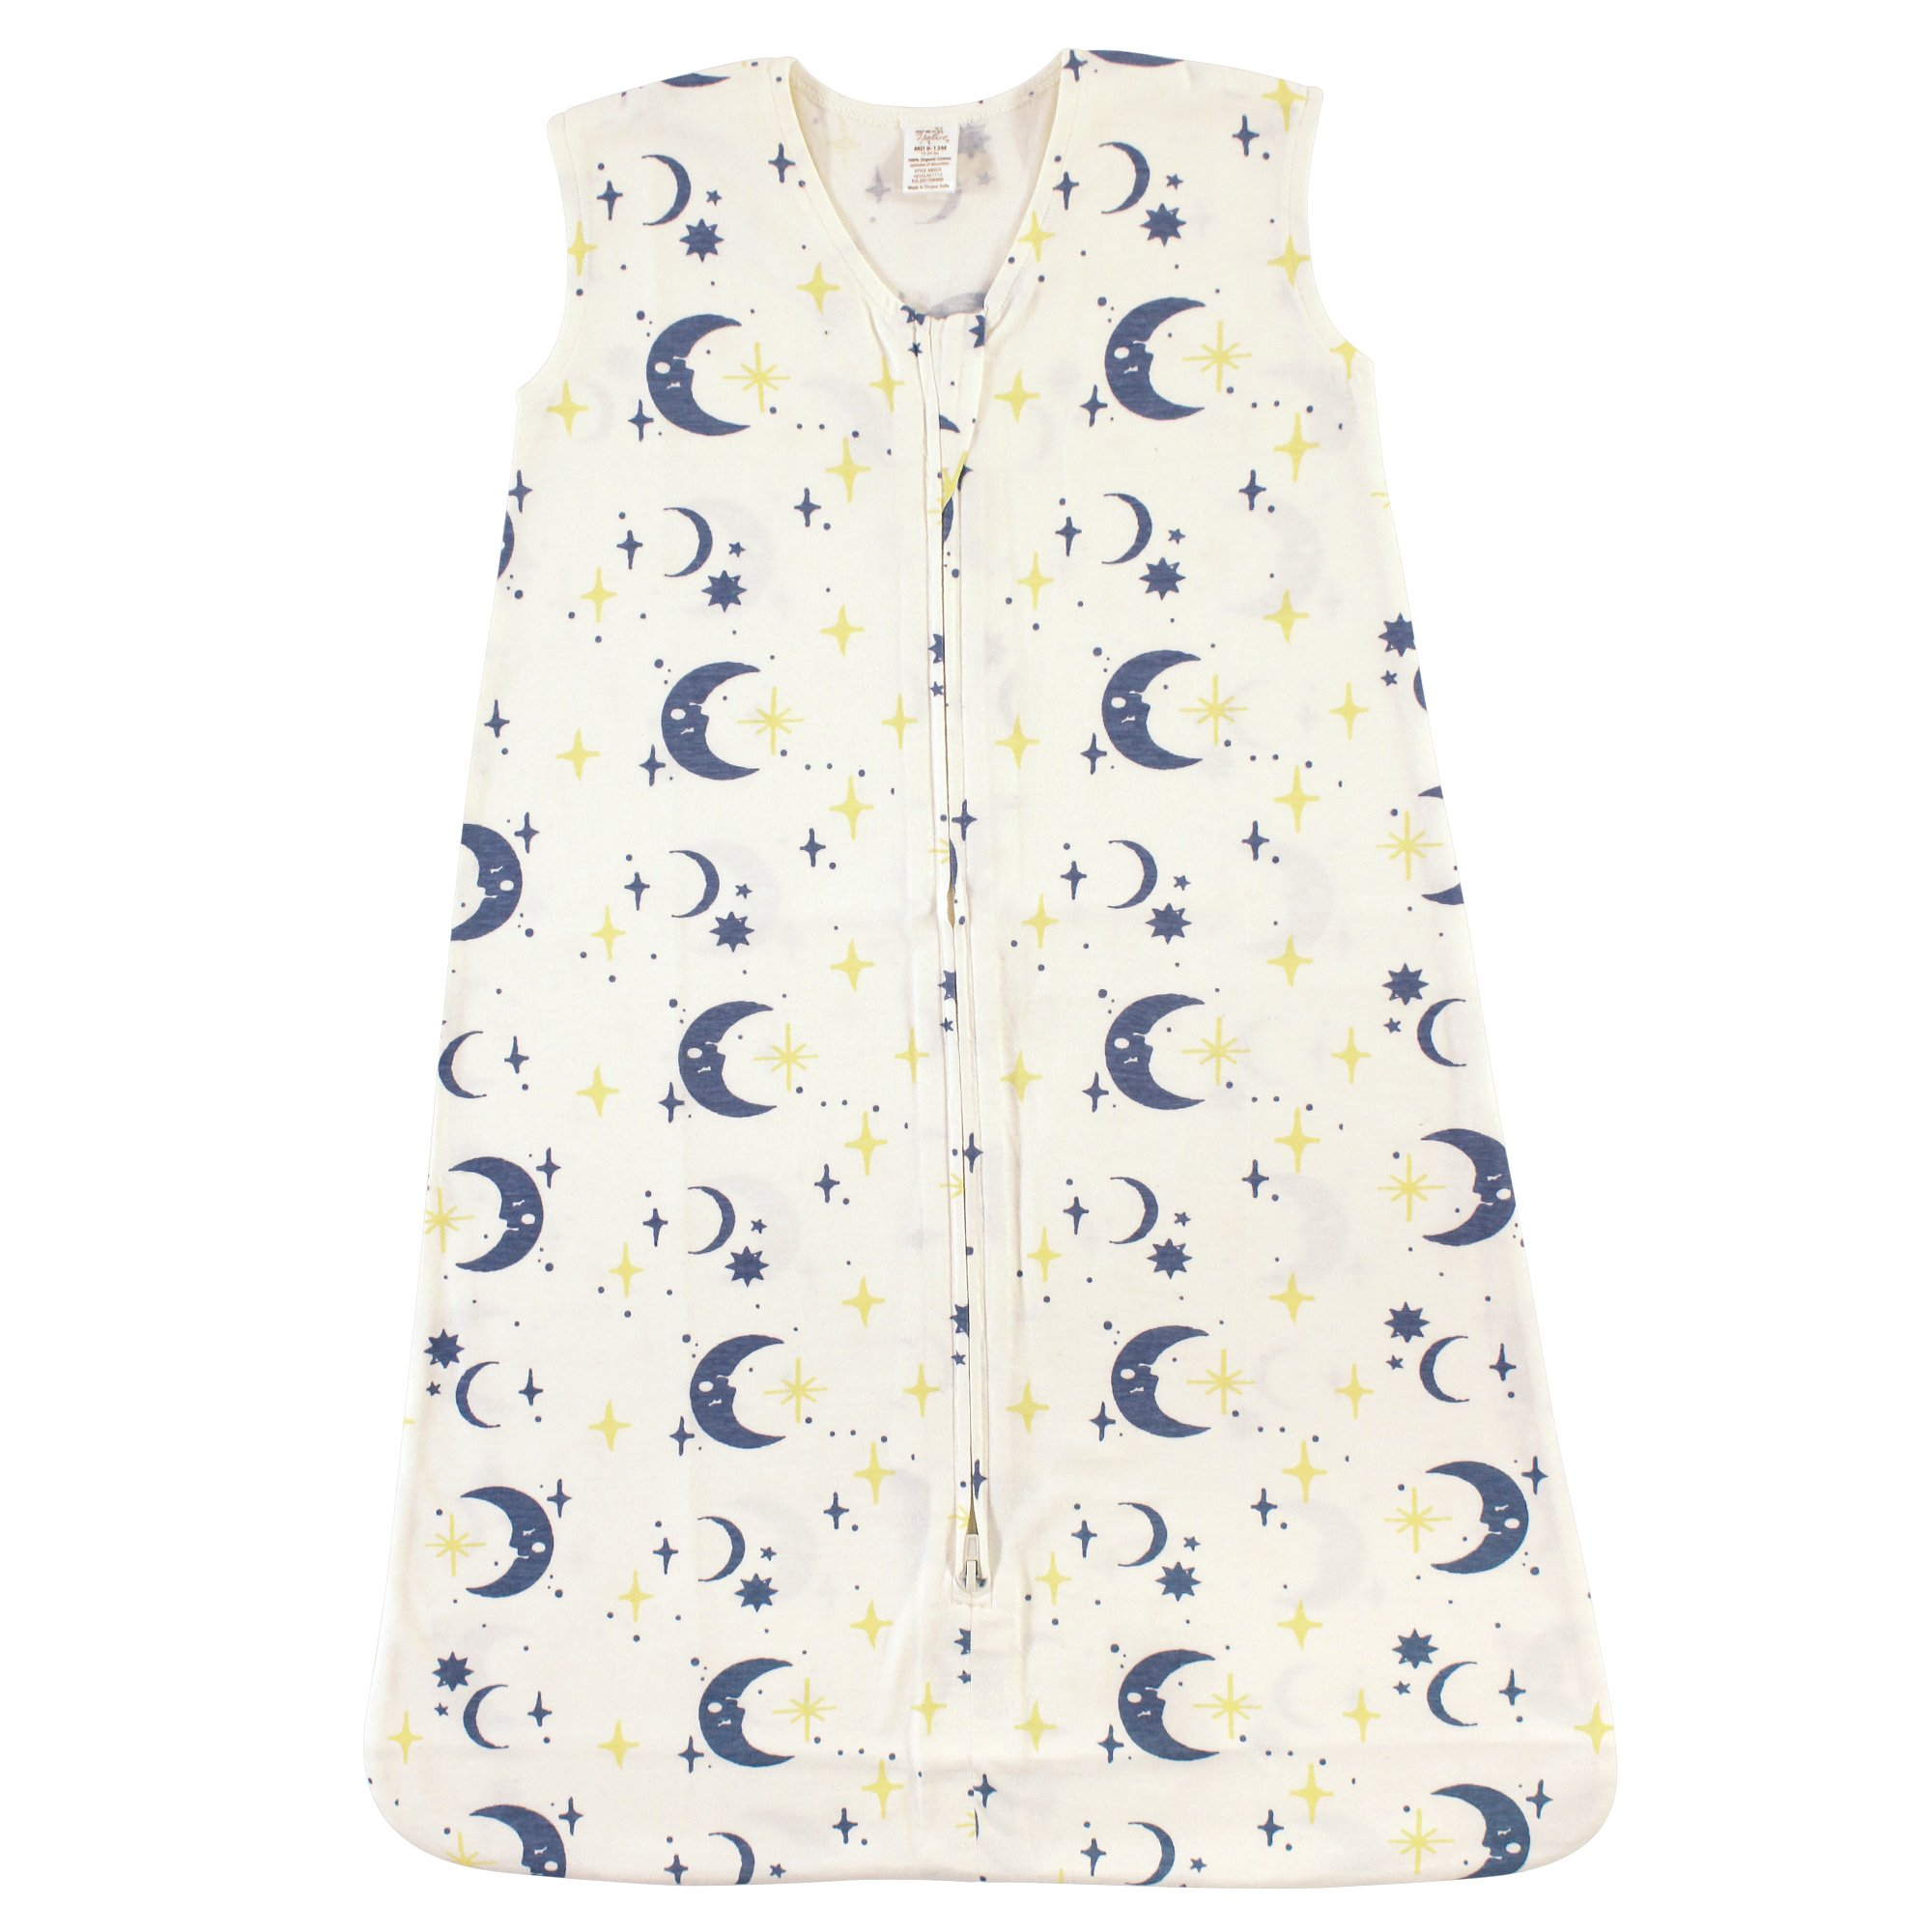 Touched by Nature Unisex-Baby Baby Organic Cotton Sleeping Bag